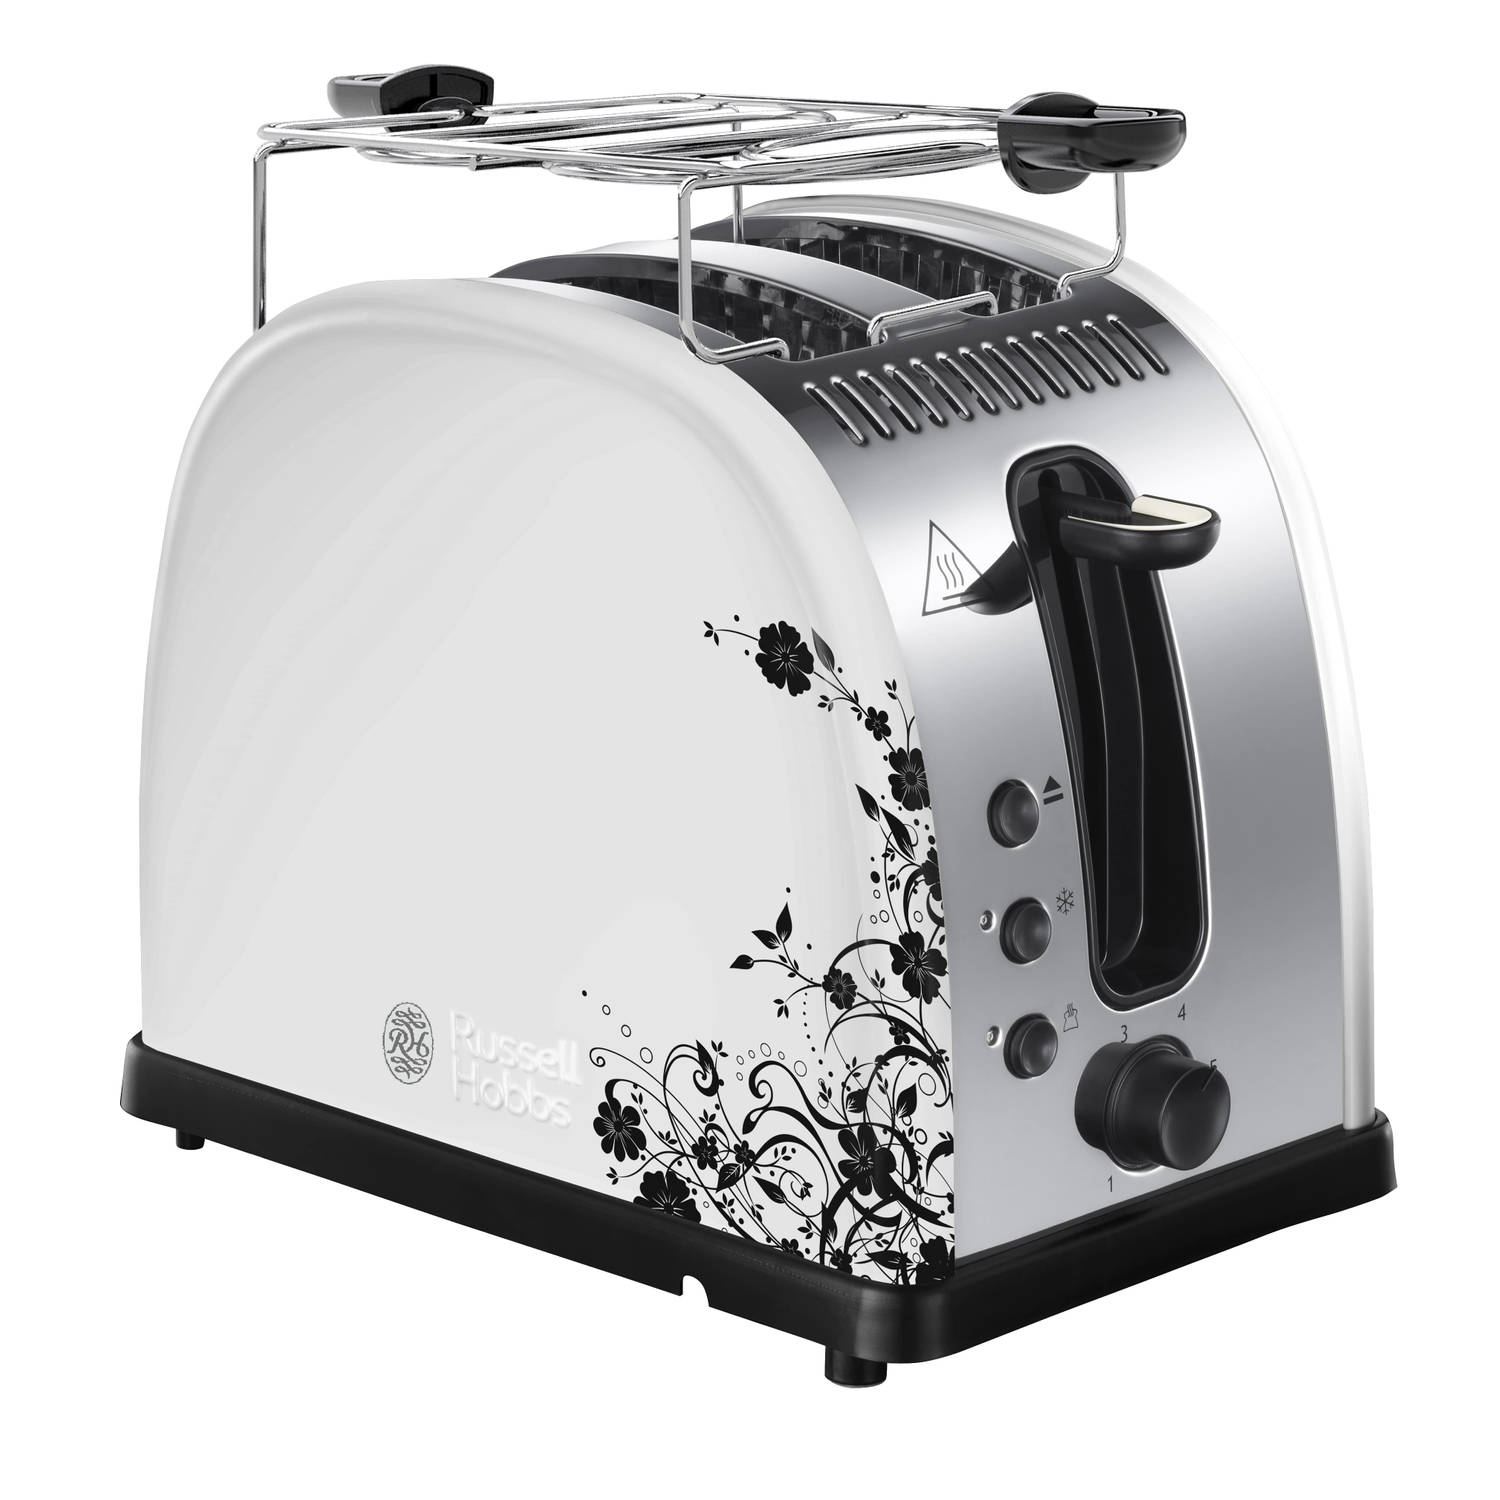 Russell Hobbs broodrooster Legacy Floral White 21973-56